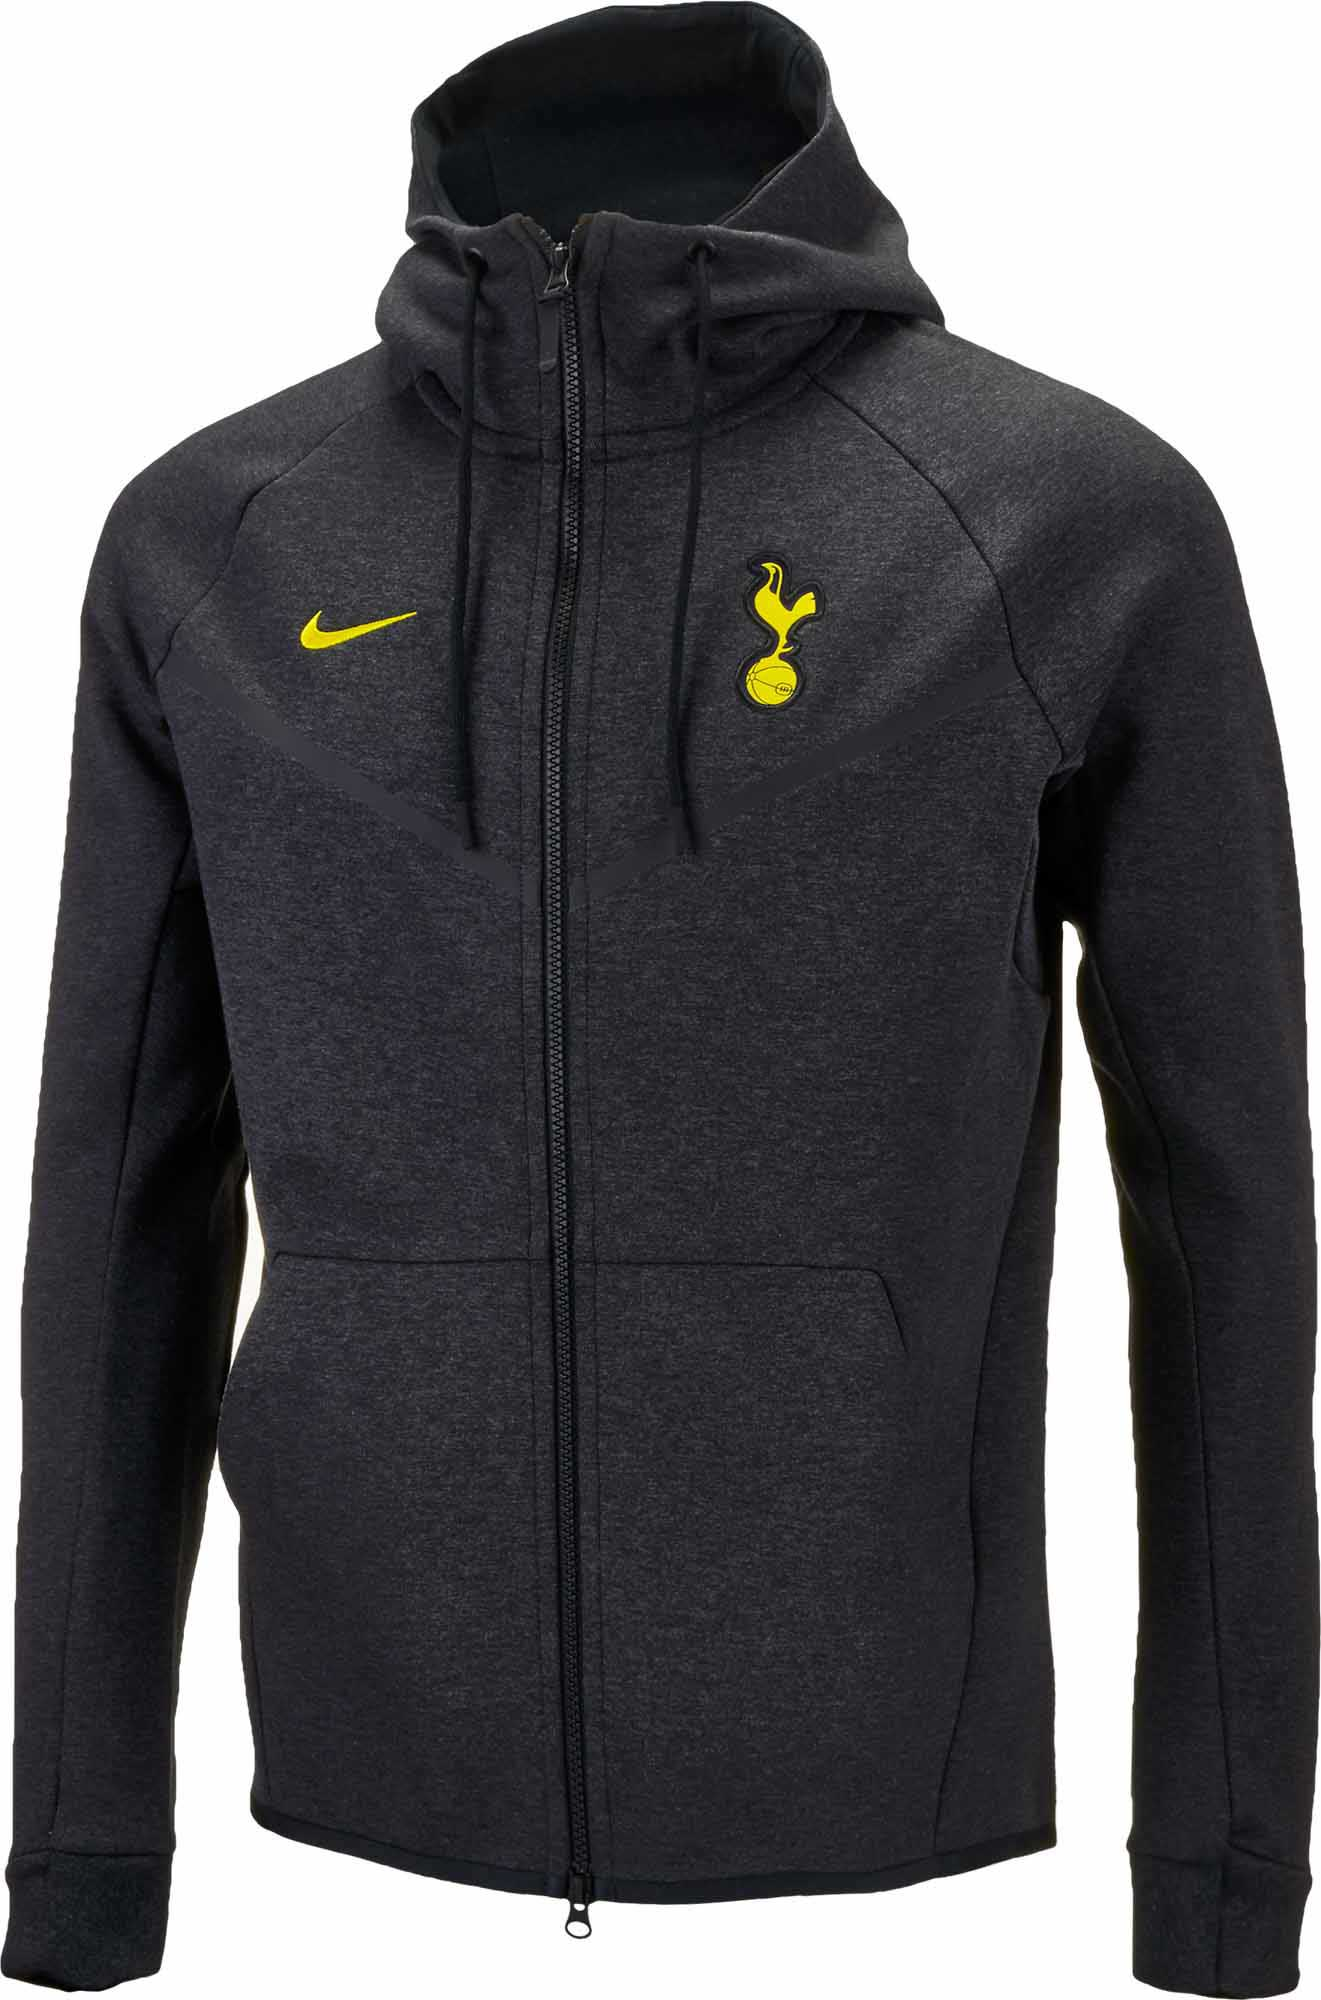 59a555d7c2dd Nike Tottenham Tech Fleece Windrunner Jacket – Black Heather Opti Yellow